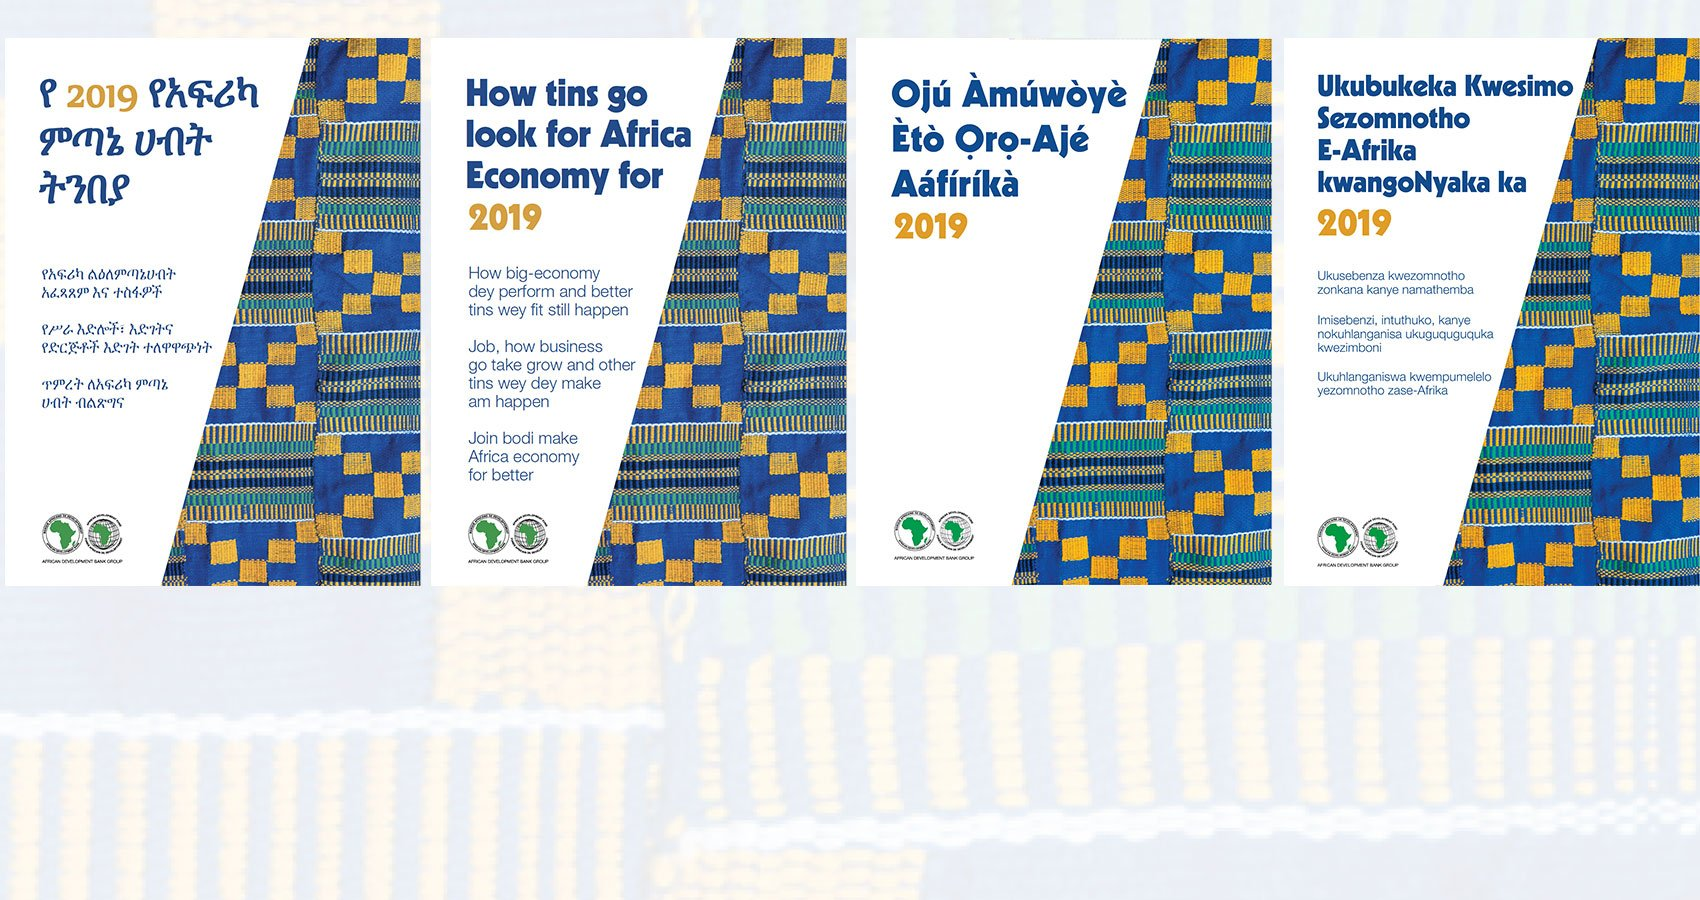 African Development Bank releases highlights of 2019 African Economic Outlook in 7 African languages